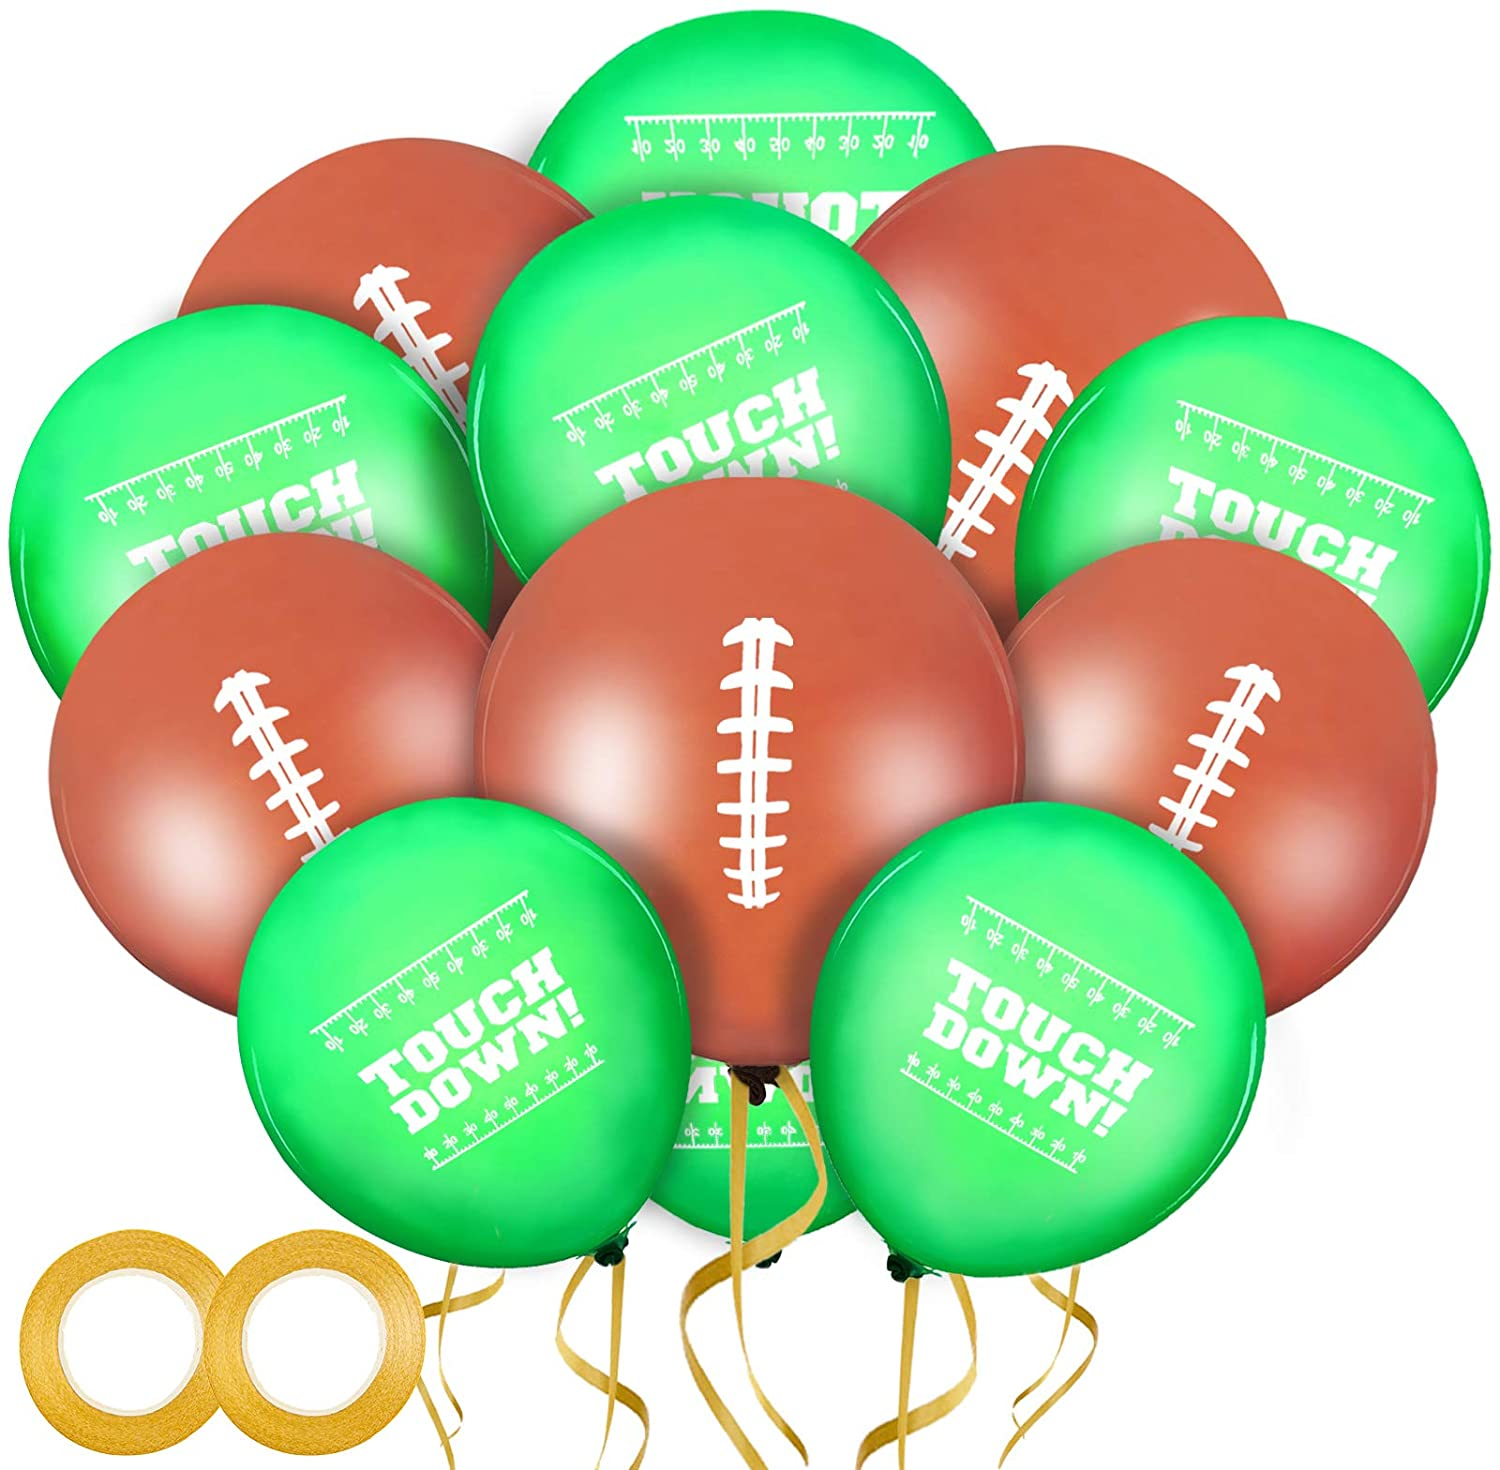 60 Pieces Football Balloons Football Field Latex Balloons Football Party Balloons and 2 Rolls Gold Balloons Ribbon for Superbowl Tailgate Game Day Football Theme Supplies Birthday Party Decorations